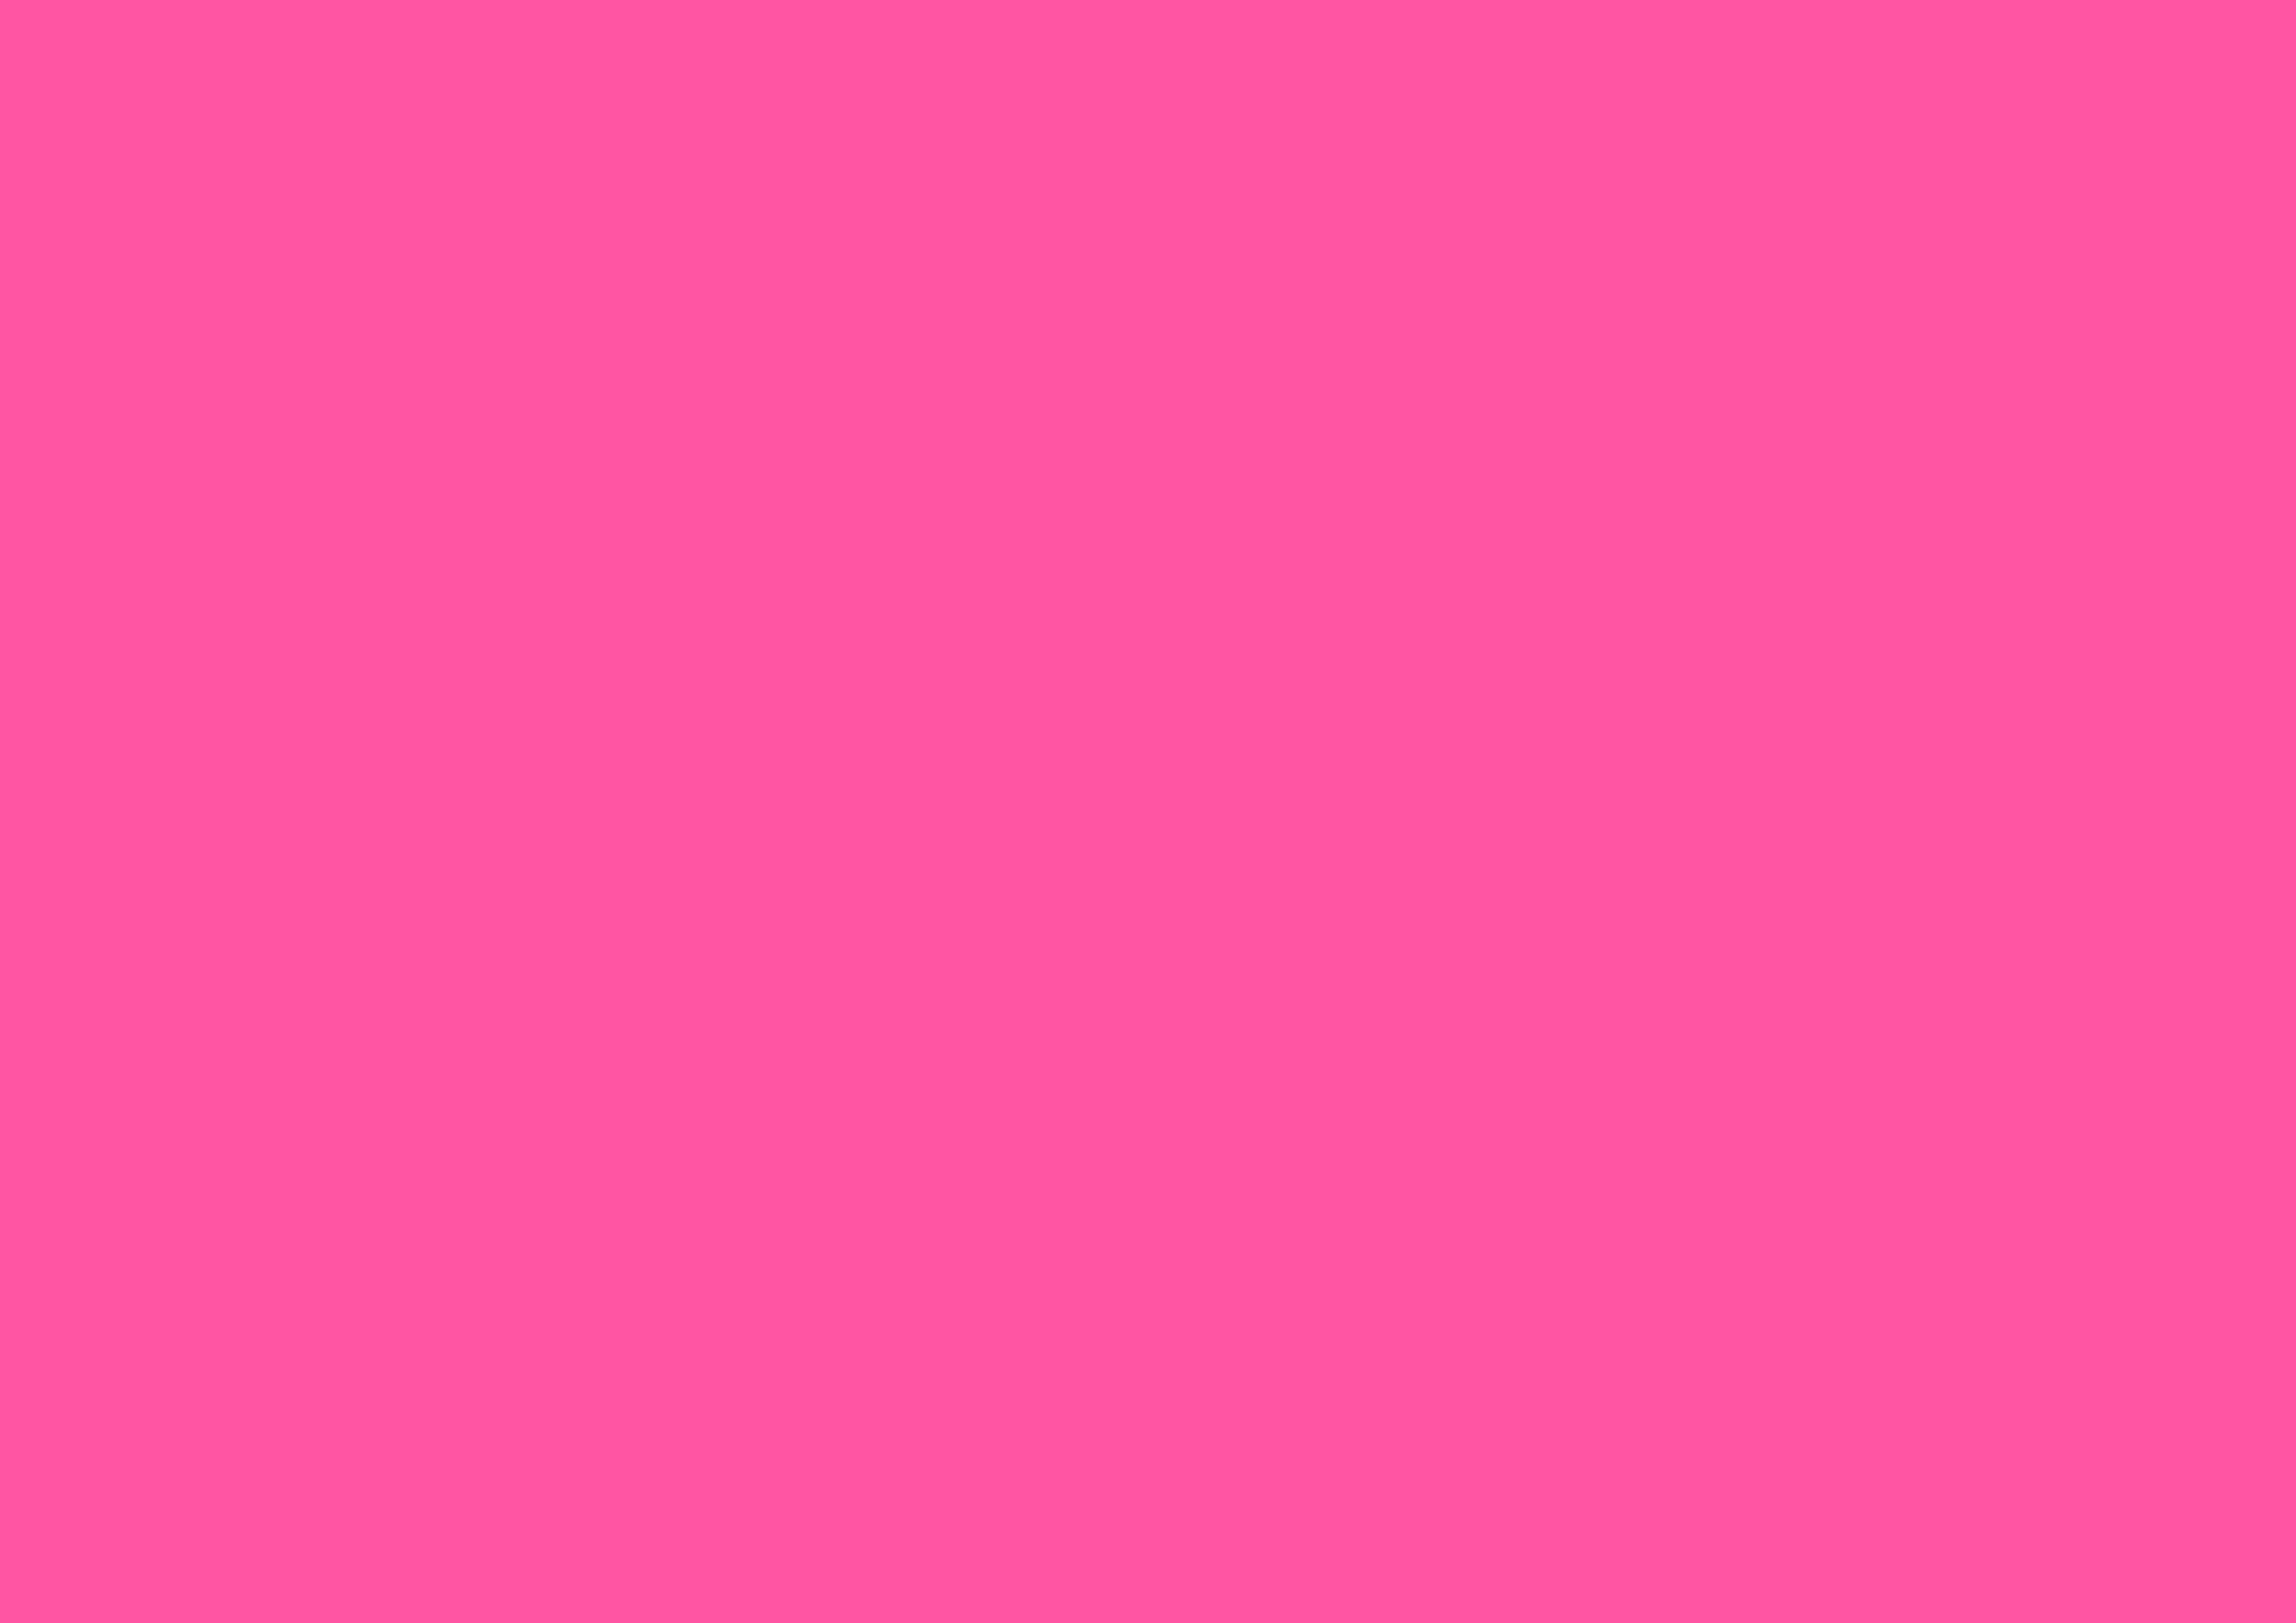 3508x2480 Magenta Crayola Solid Color Background